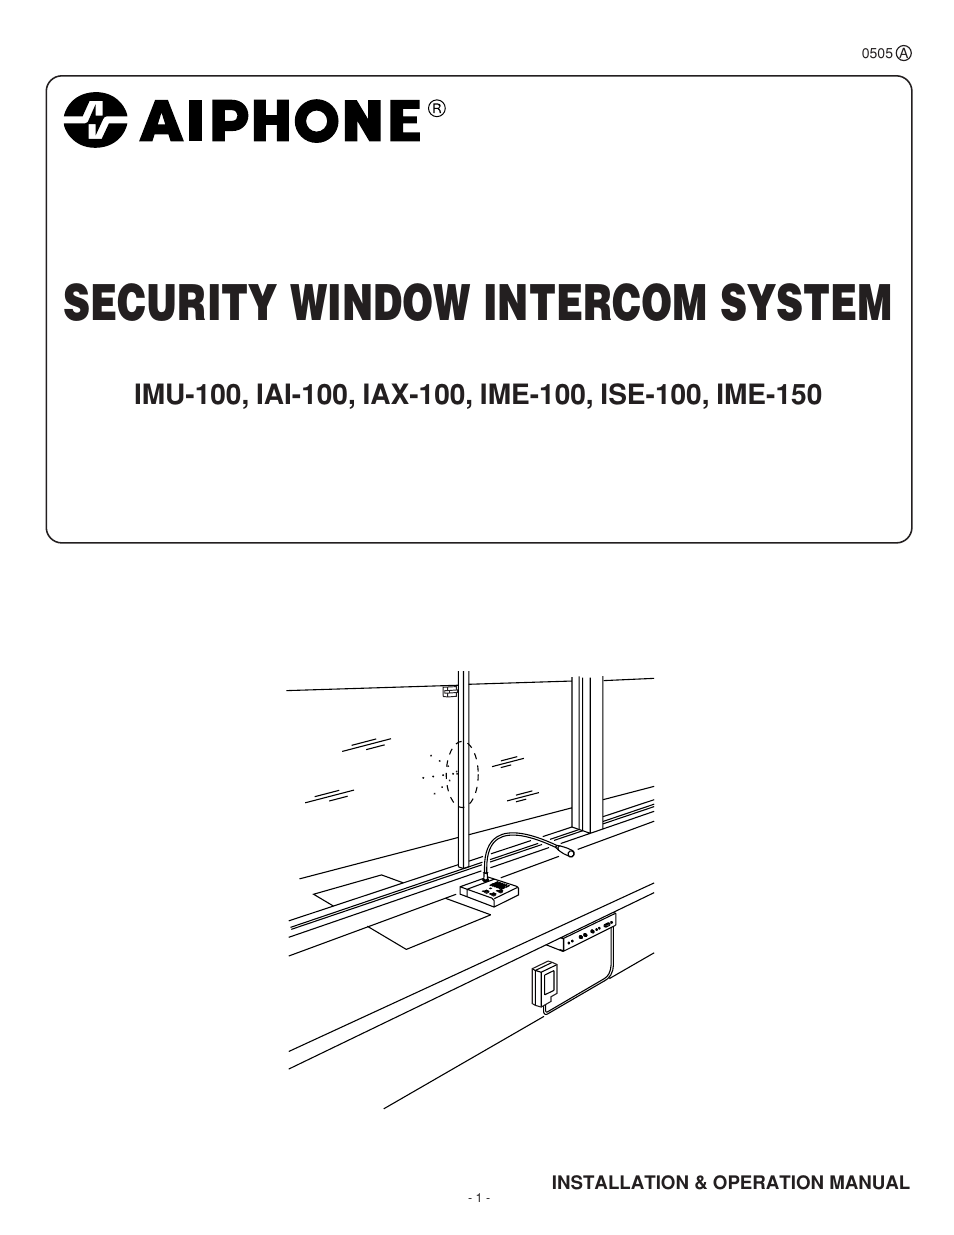 Aiphone Ise 100 User Manual 20 Pages Also For Imu Iax Intercom Wiring Diagram And Installation Guide Ime 150 Iai